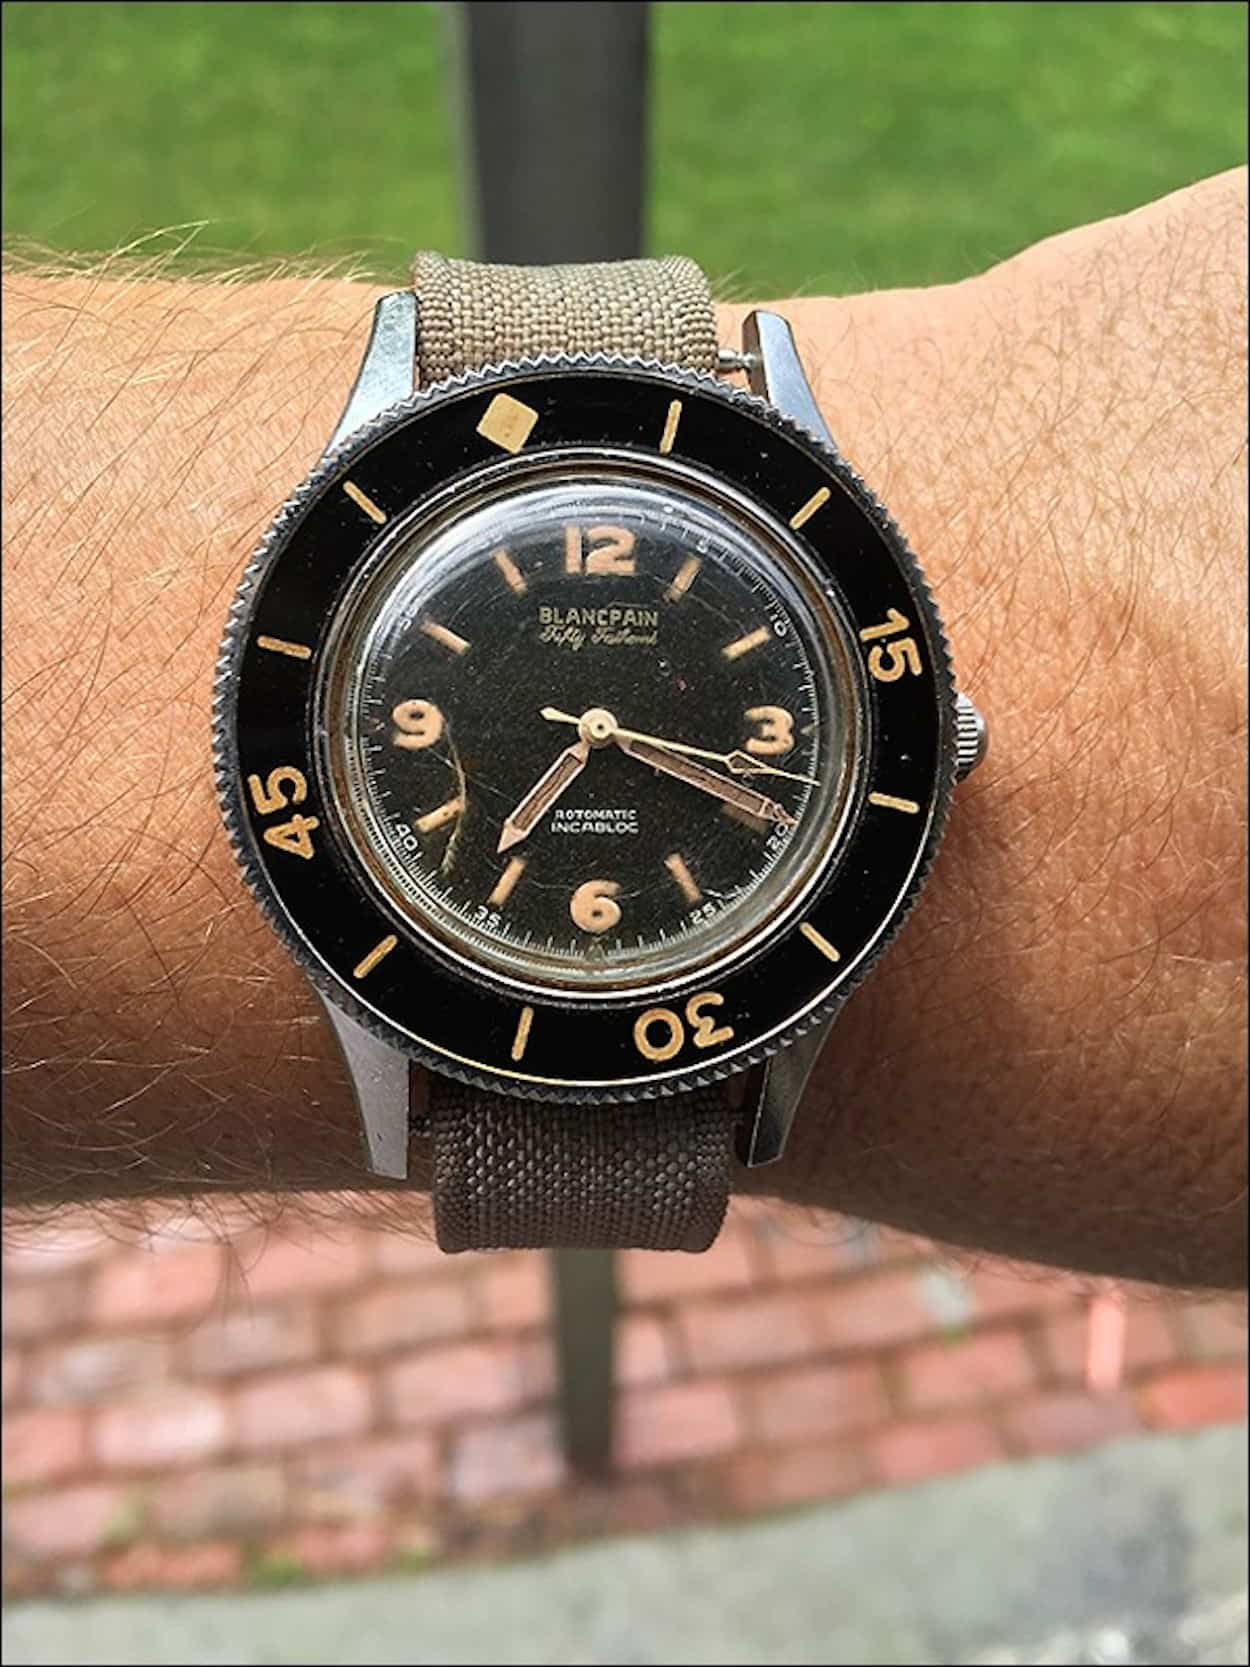 Blancpain Fifty Fathoms with bezel